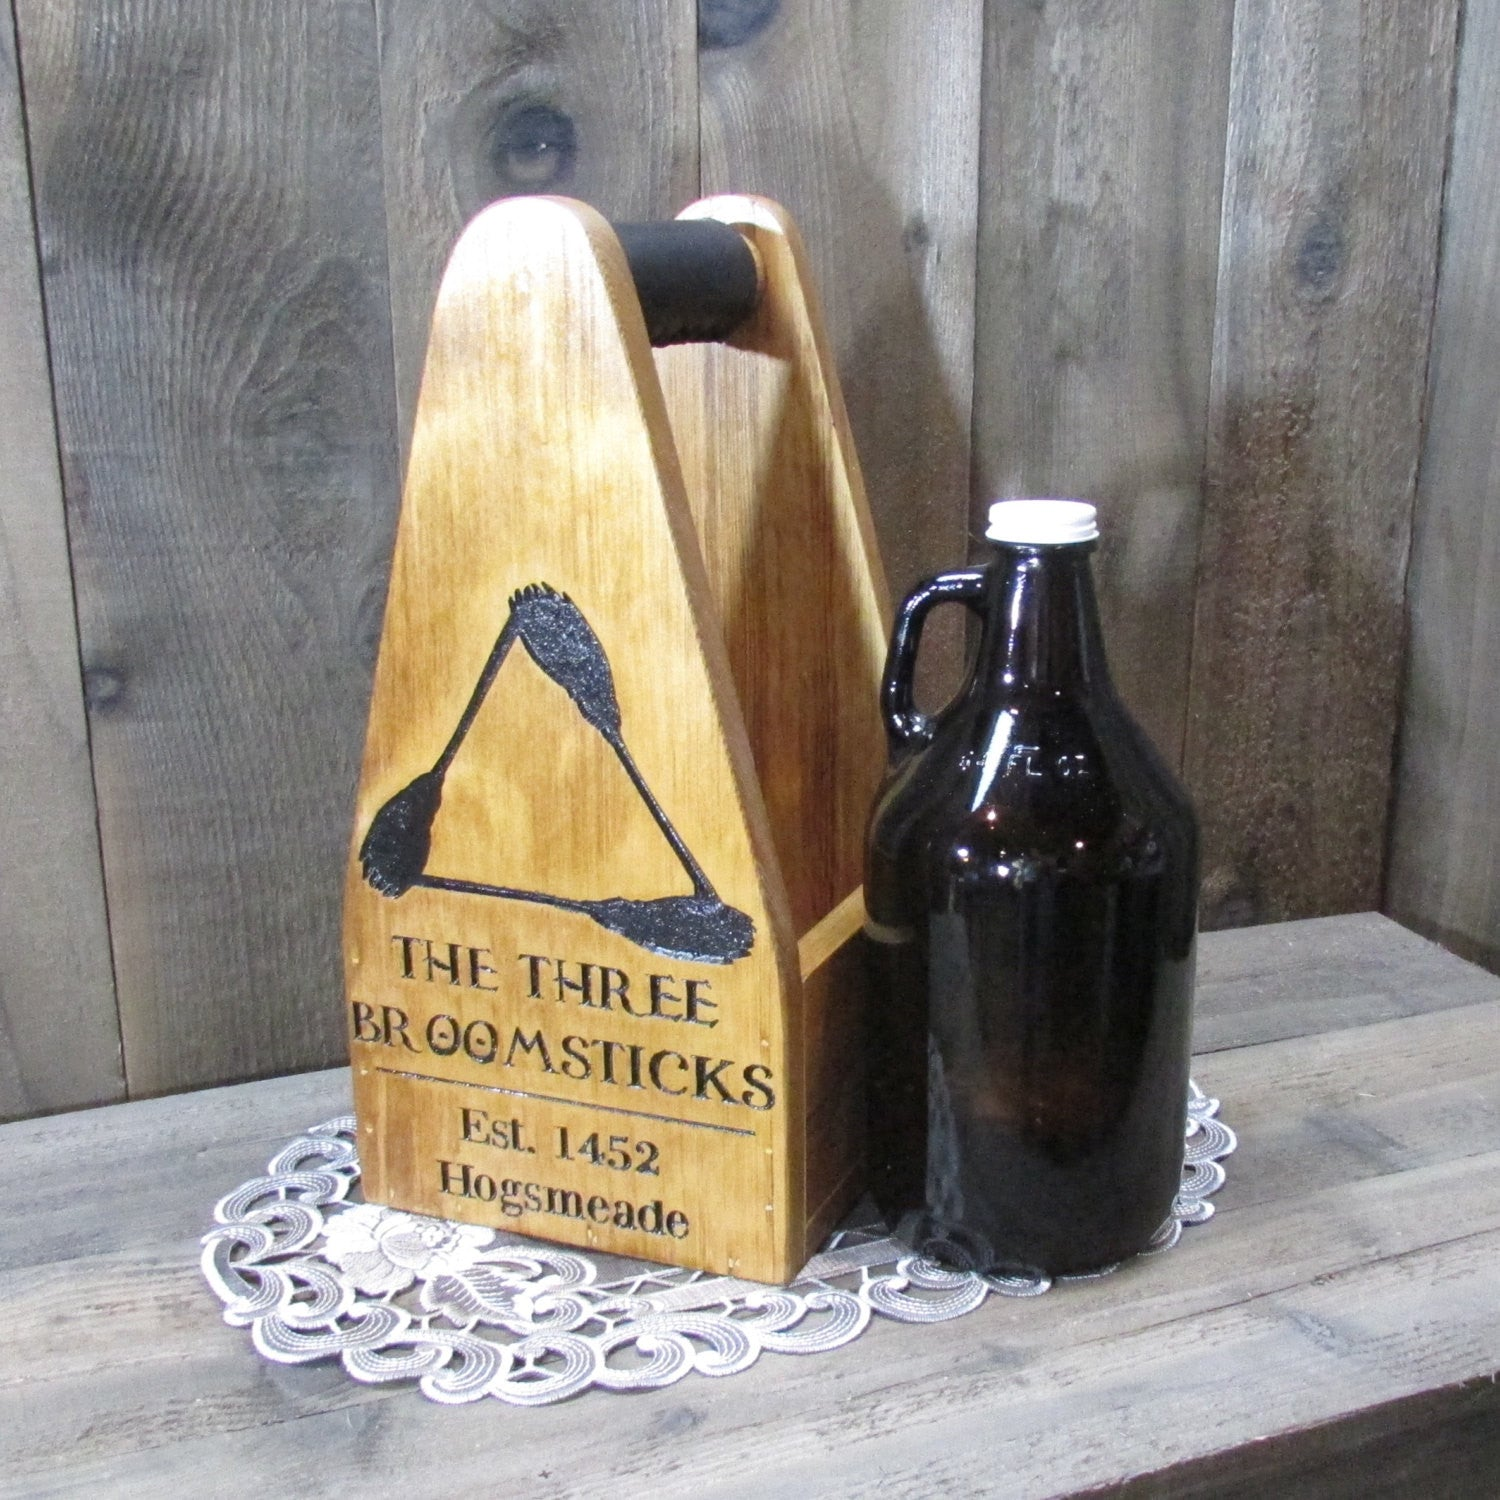 Beer Growler Carrier Crate - As Shown Holds One 64oz Growler - Other Sizes Available